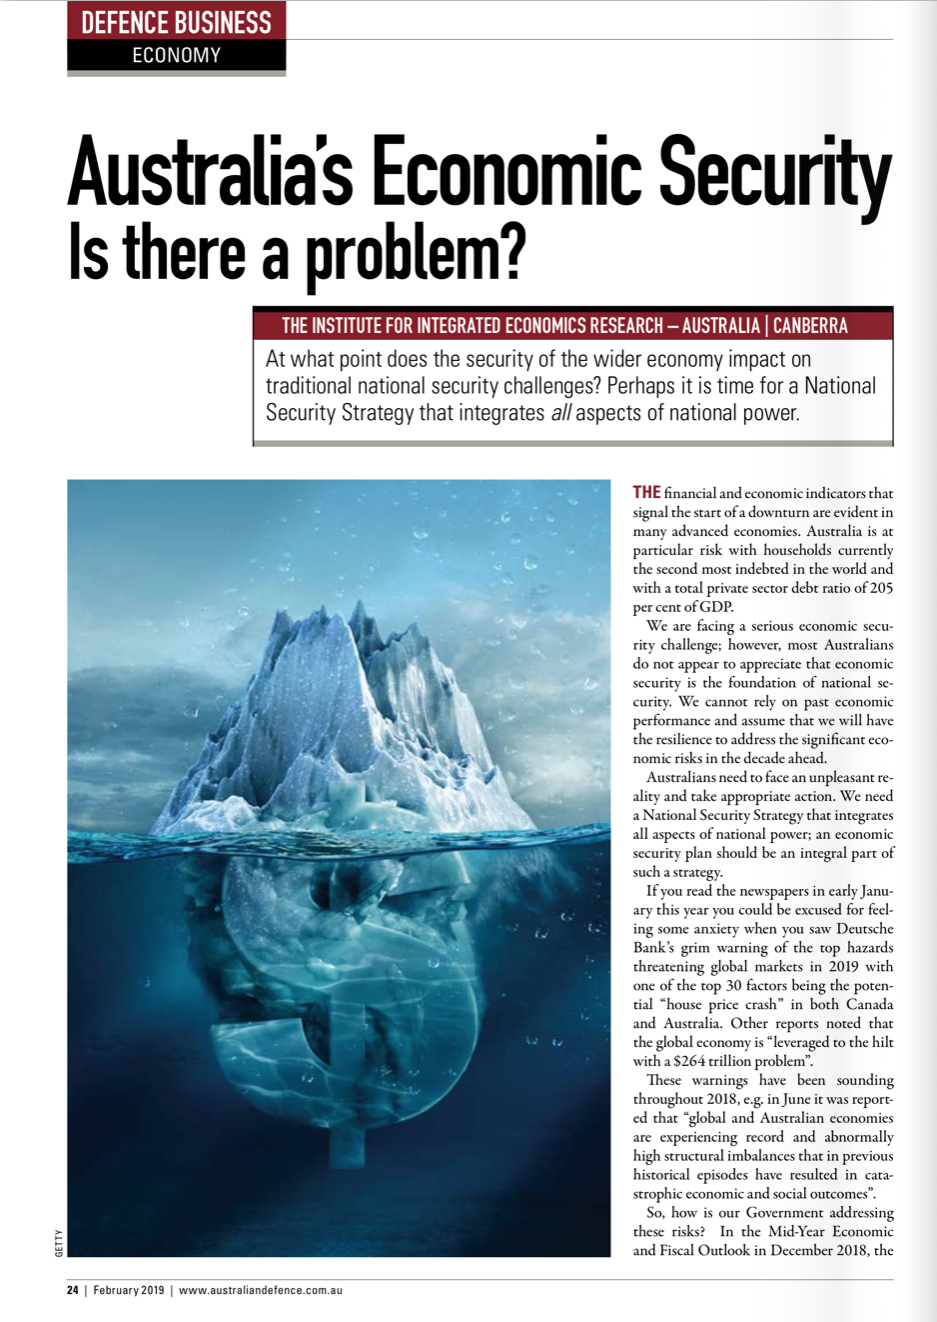 Australia's Economic Security: Is there a problem? - What is the risk for our National Security and Defence Capability?Published in the Australian Defence Magazine, February 2019.Financial and economic indicators that signal the start of a downturn are evident in advanced economies. Australia is at particular risk with households currently the second most indebted in the world and with a total private sector debt ratio of 205% of GDP. We are facing a serious economic security challenge; however, most Australians (including many of our politicians) do not appear to appreciate that economic security is the foundation of our national security.We cannot rely on past economic performance and assume that we will have the resilience to address the significant economic risks in the decade ahead. Australians need to face an unpleasant reality and take appropriate action. We need a National Security Strategy that integrates all aspects of national power. An economic security plan should be an integral part of such a strategy.Download the Economic Security Article